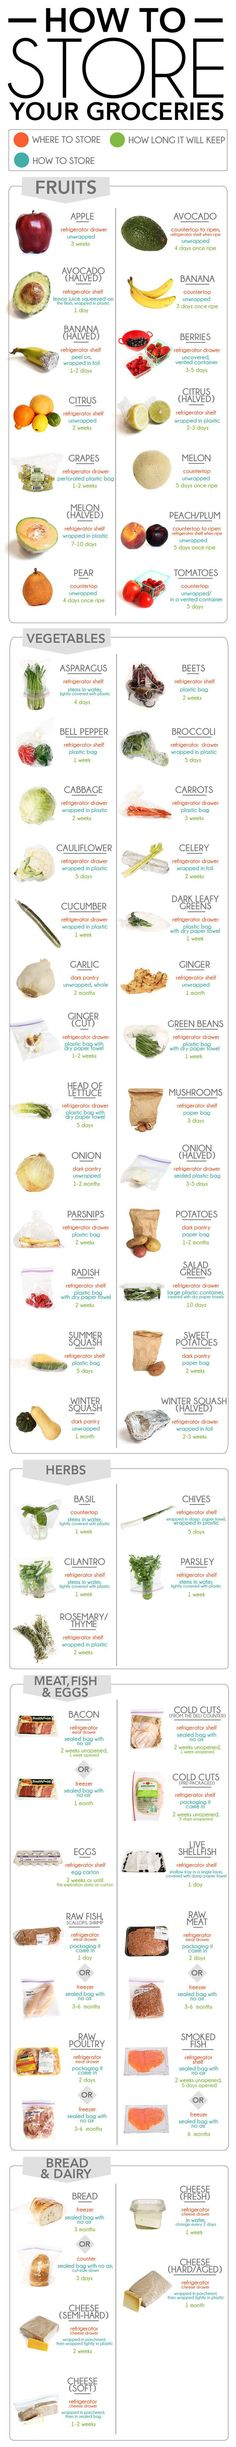 How, Where and How Long to Store Foods